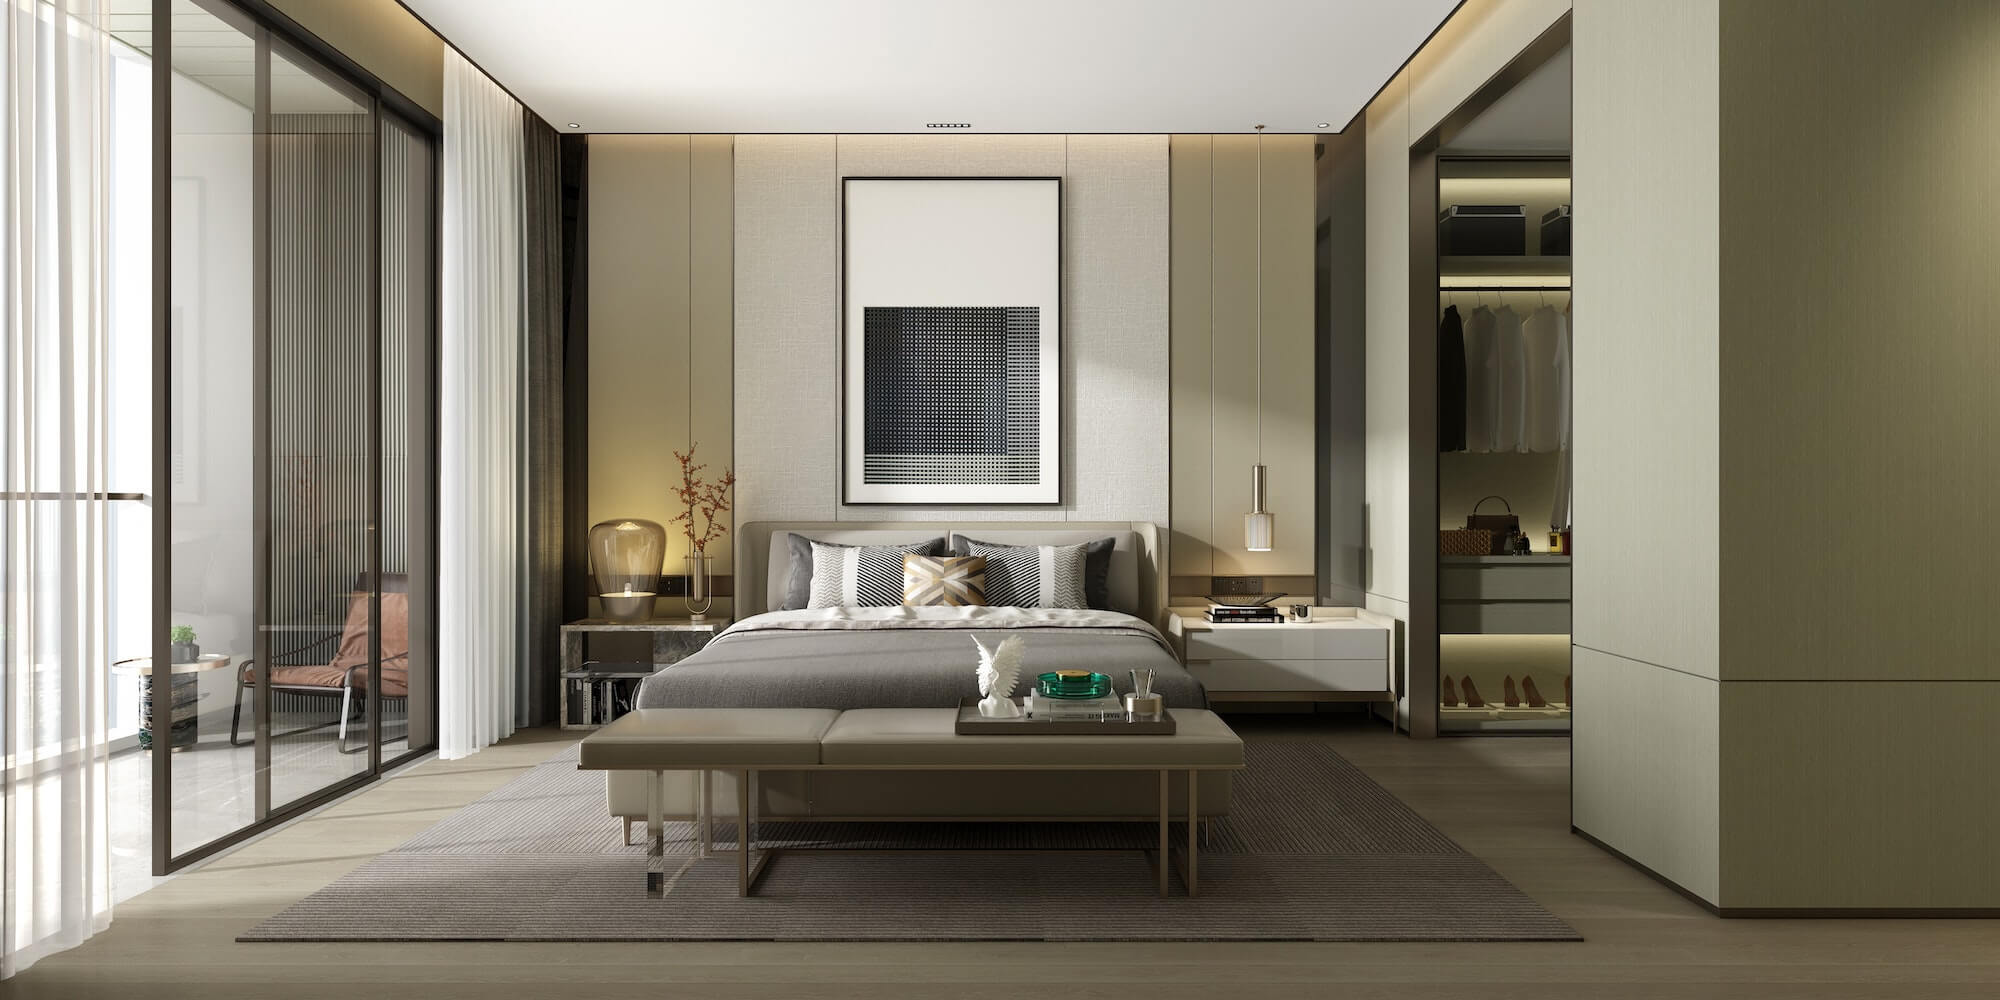 Real estate Photography of a large modern bedroom